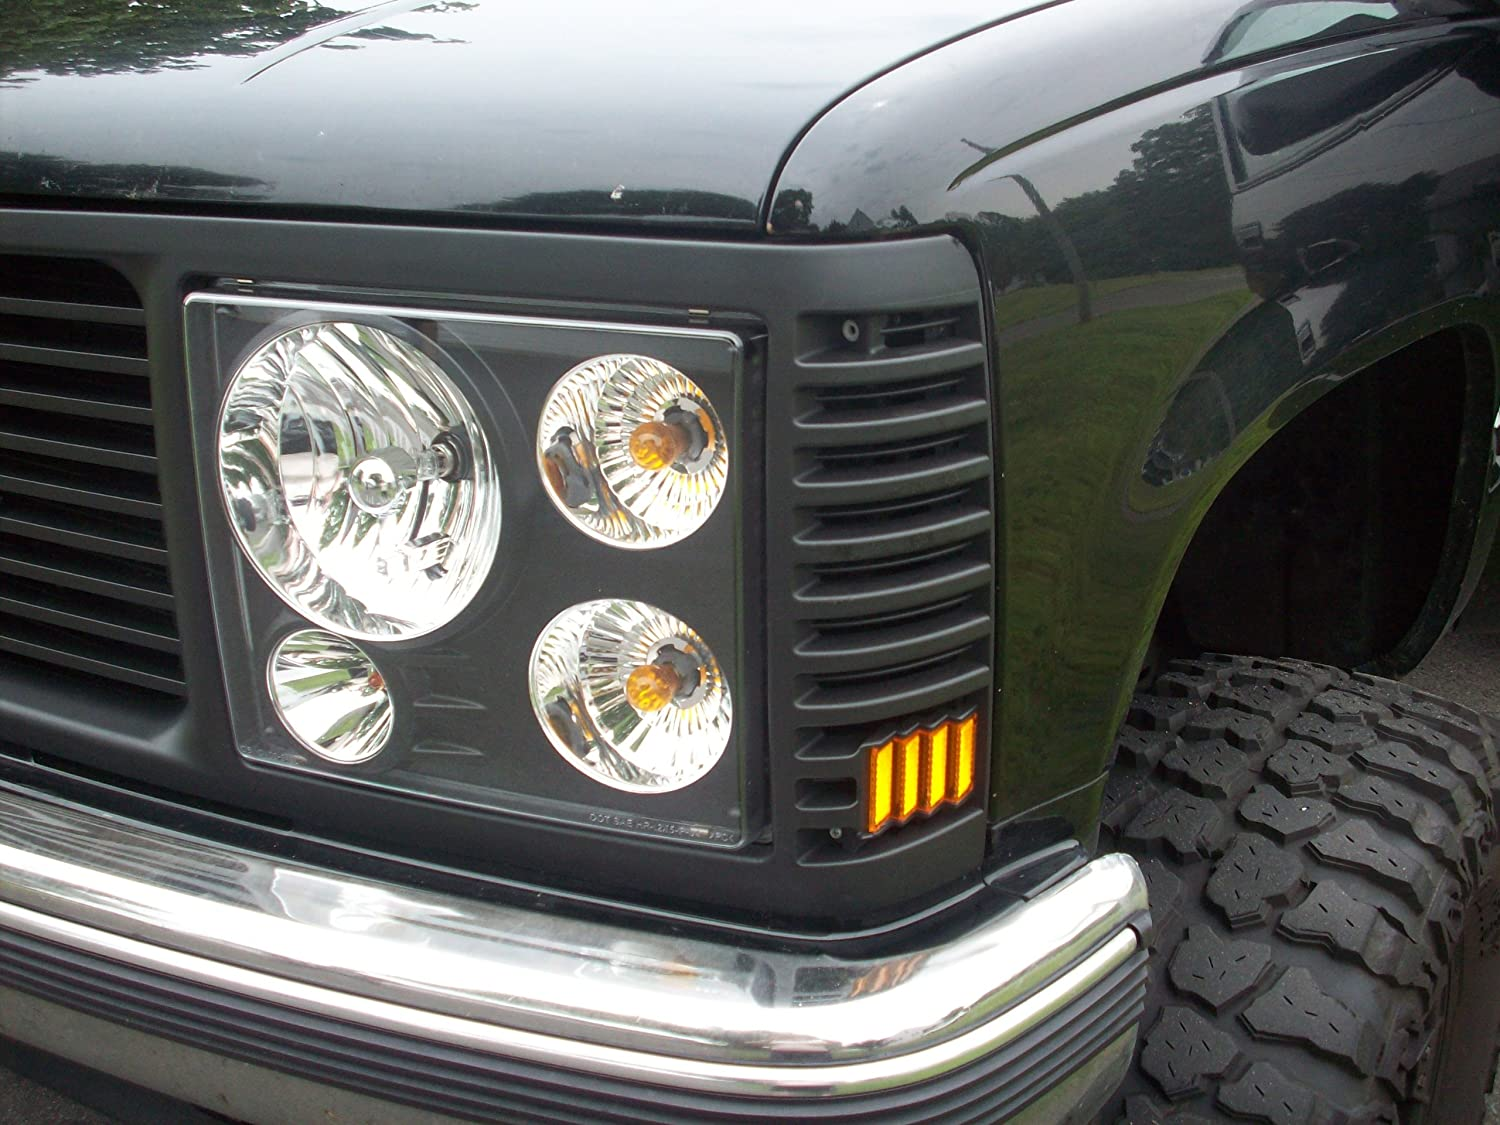 92 99 Chevy Tahoe Custom Grille Kit Range Rover Style 1998 Tail Light Wiring 1992 1993 1994 1995 1996 1997 1999 2wd 4wd Chrome Black Headlights Automotive